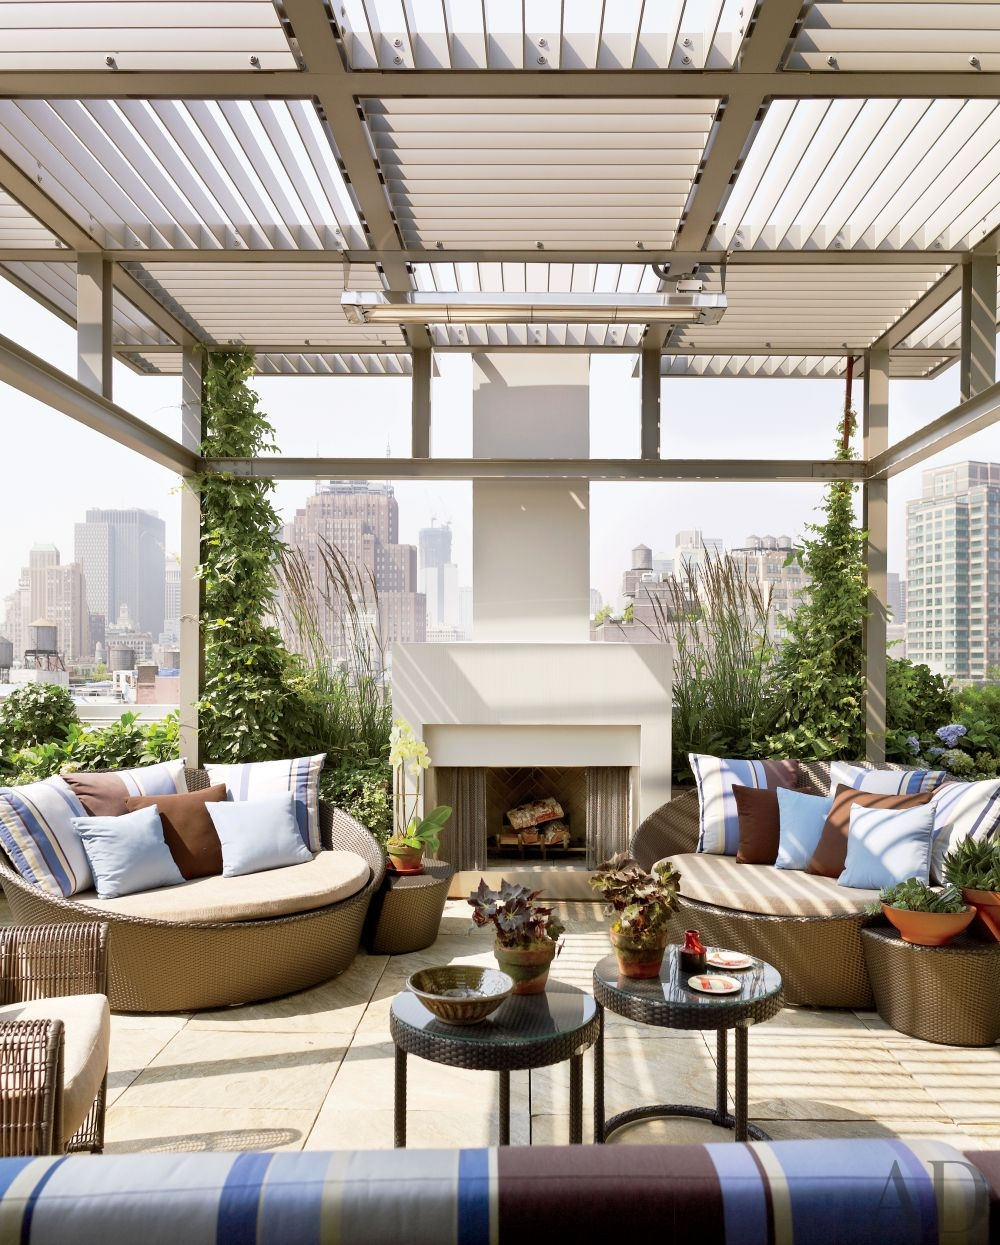 modern-outdoor-space-de-la-torre-design-studio-new-york-new-york-201308_1000-